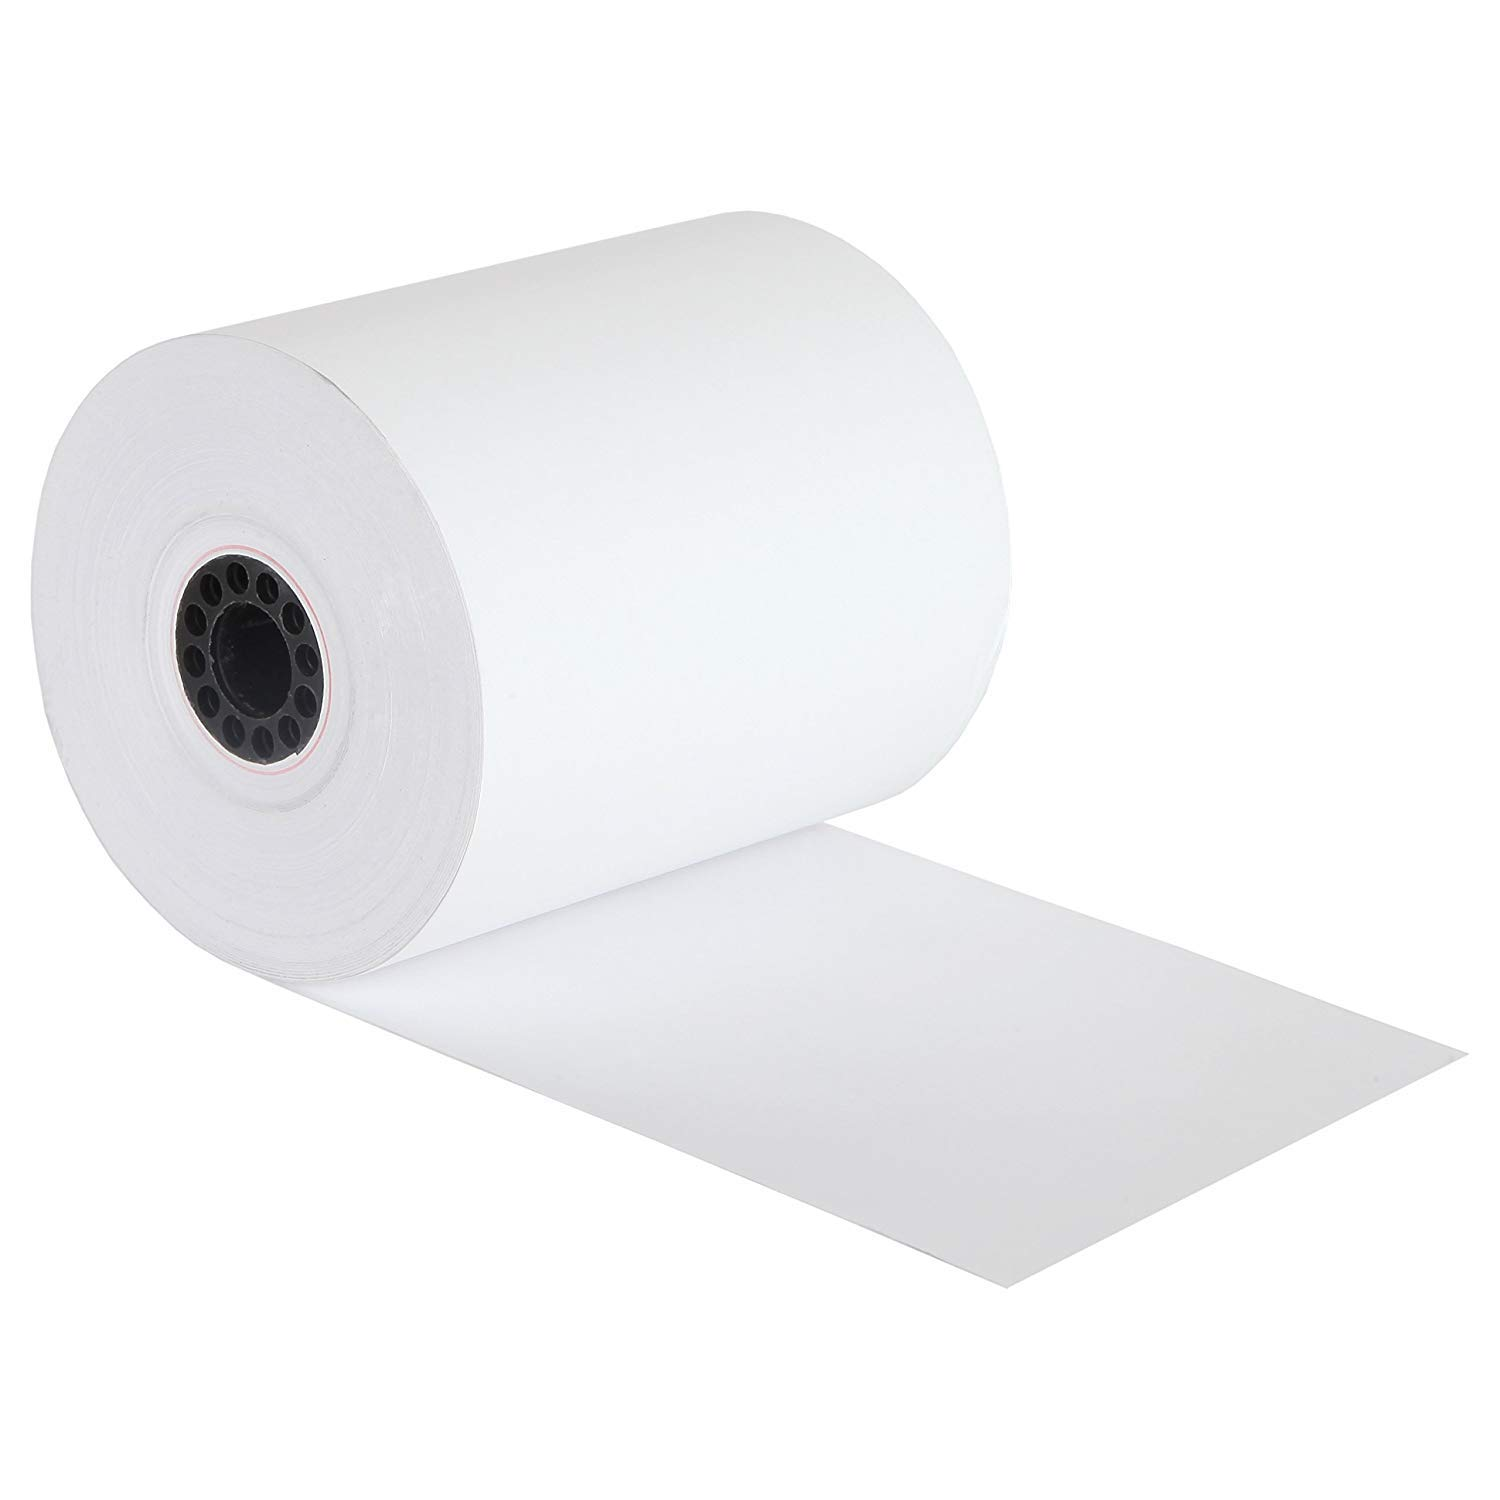 FHS Retail 3 1/8'' x 230' Thermal Receipt Paper Rolls (50 Rolls) - for Most Receipt Printers, POS Systems, and Cash Registers